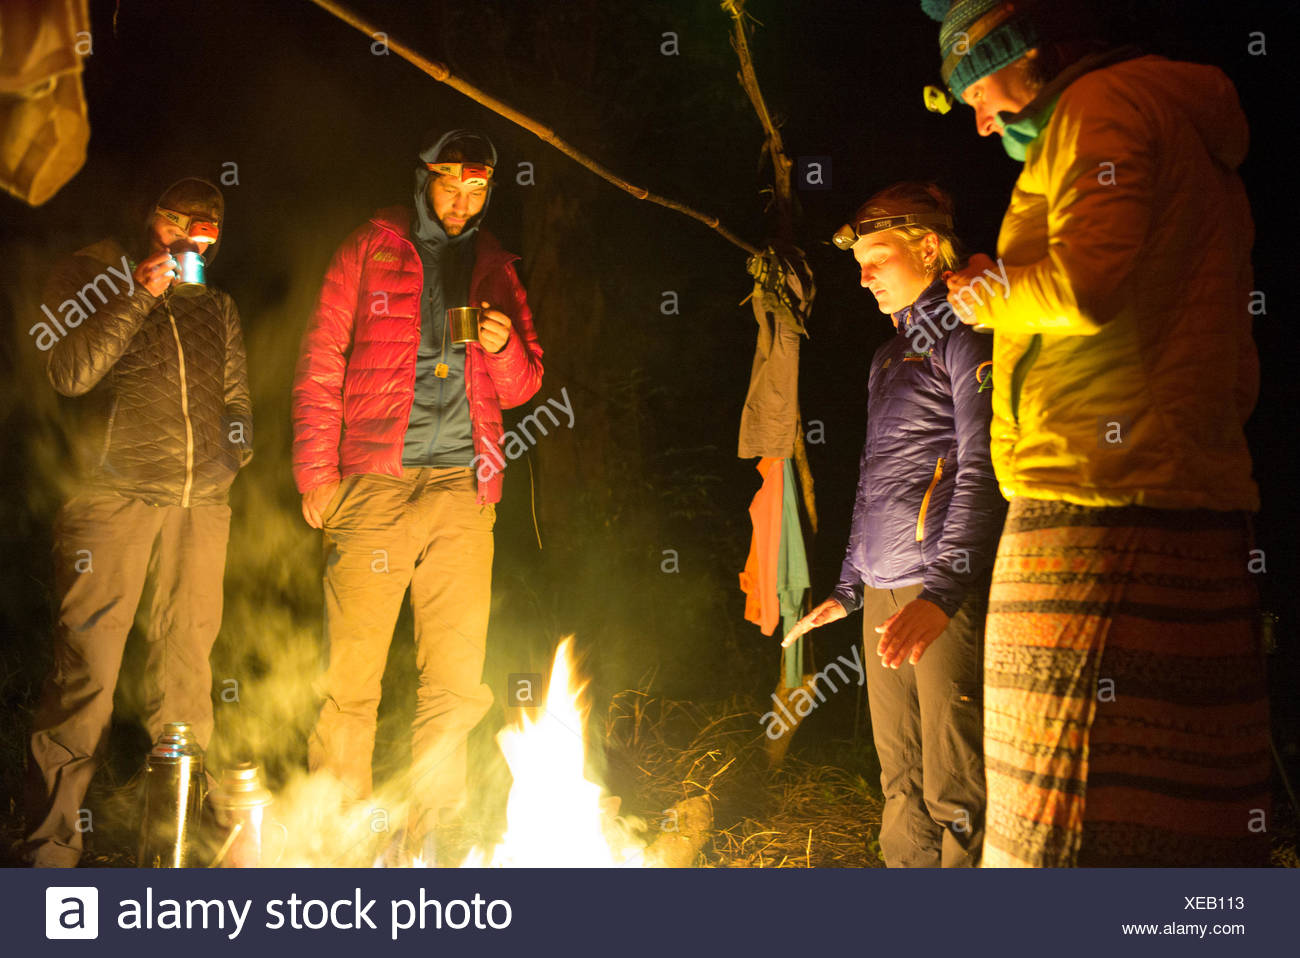 Expedition members stand around a blazing campfire. - Stock Image